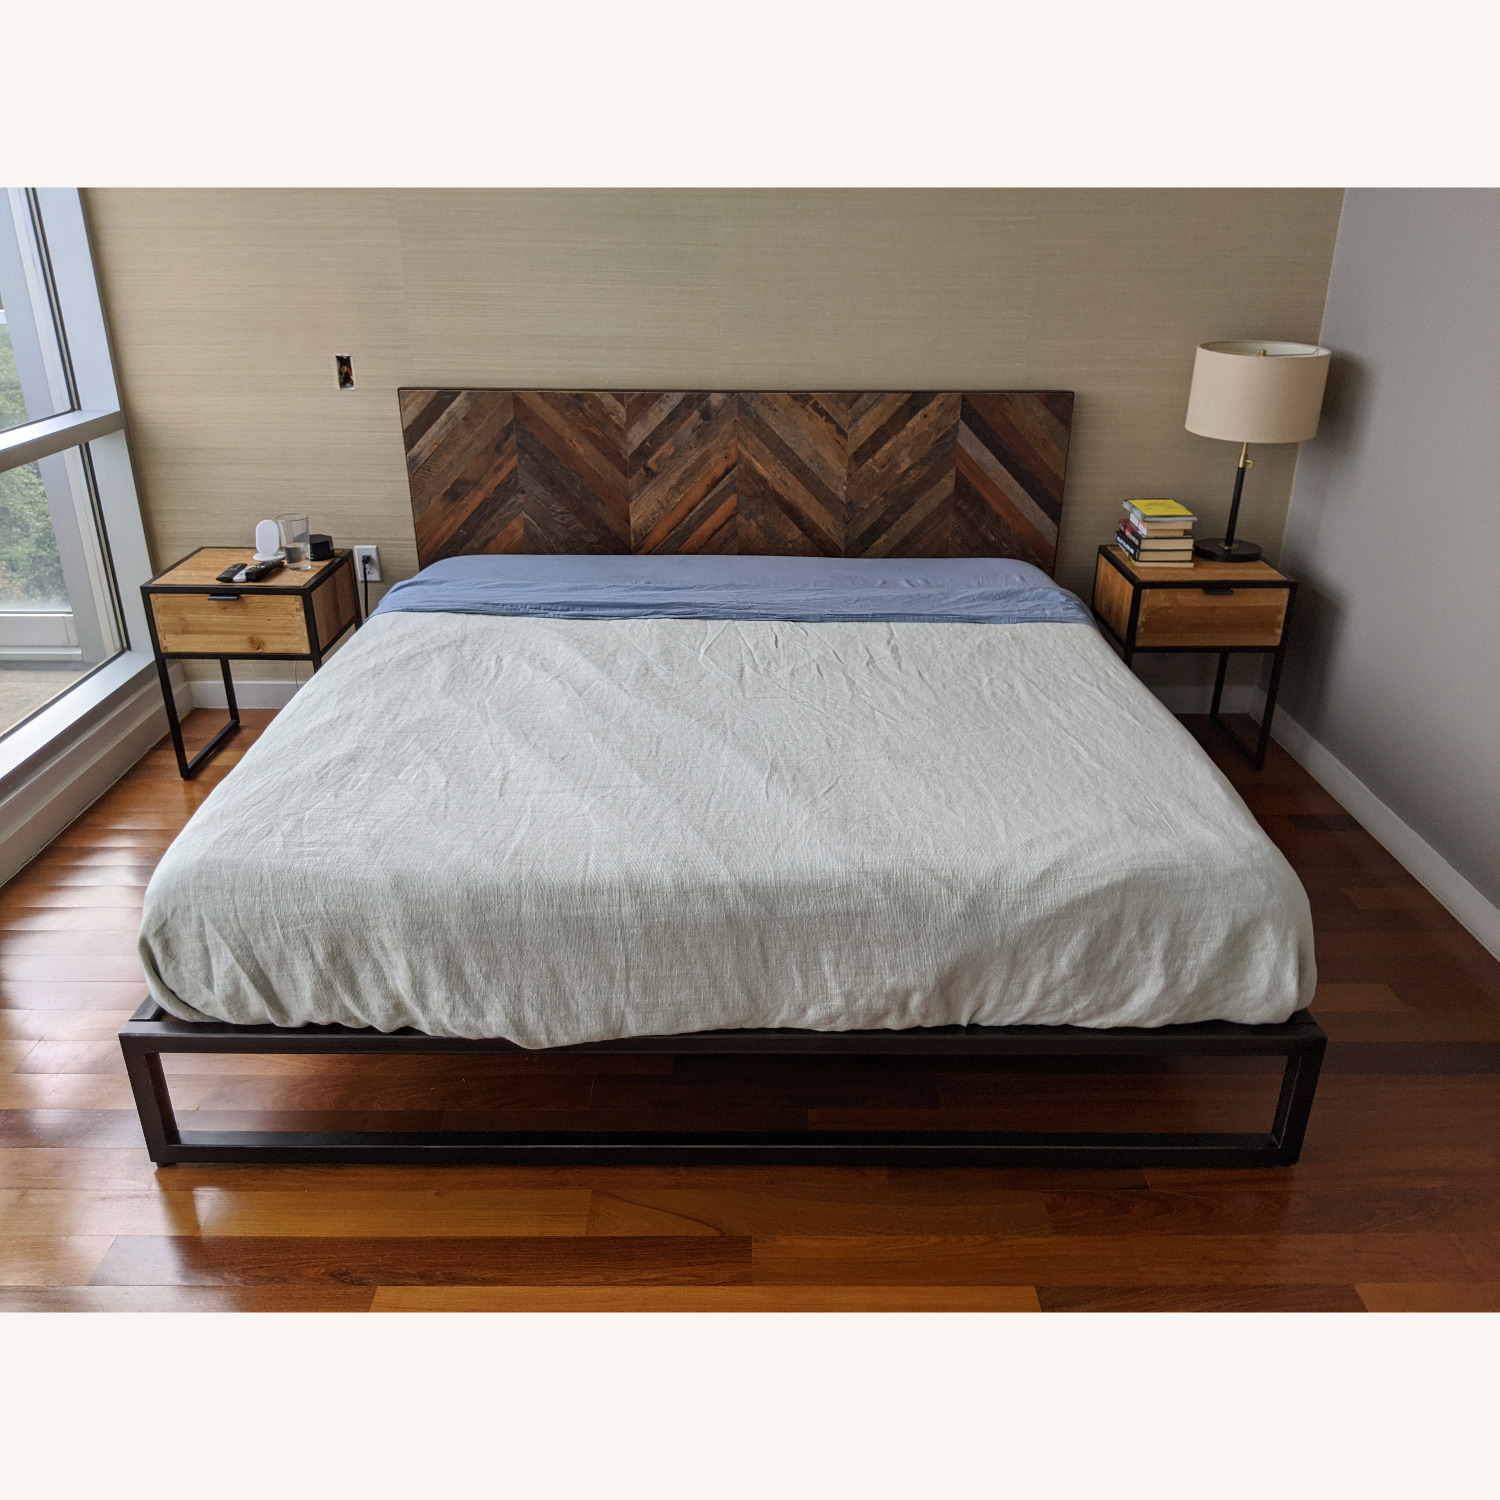 King Size Teak and Iron Bed Frame - image-1